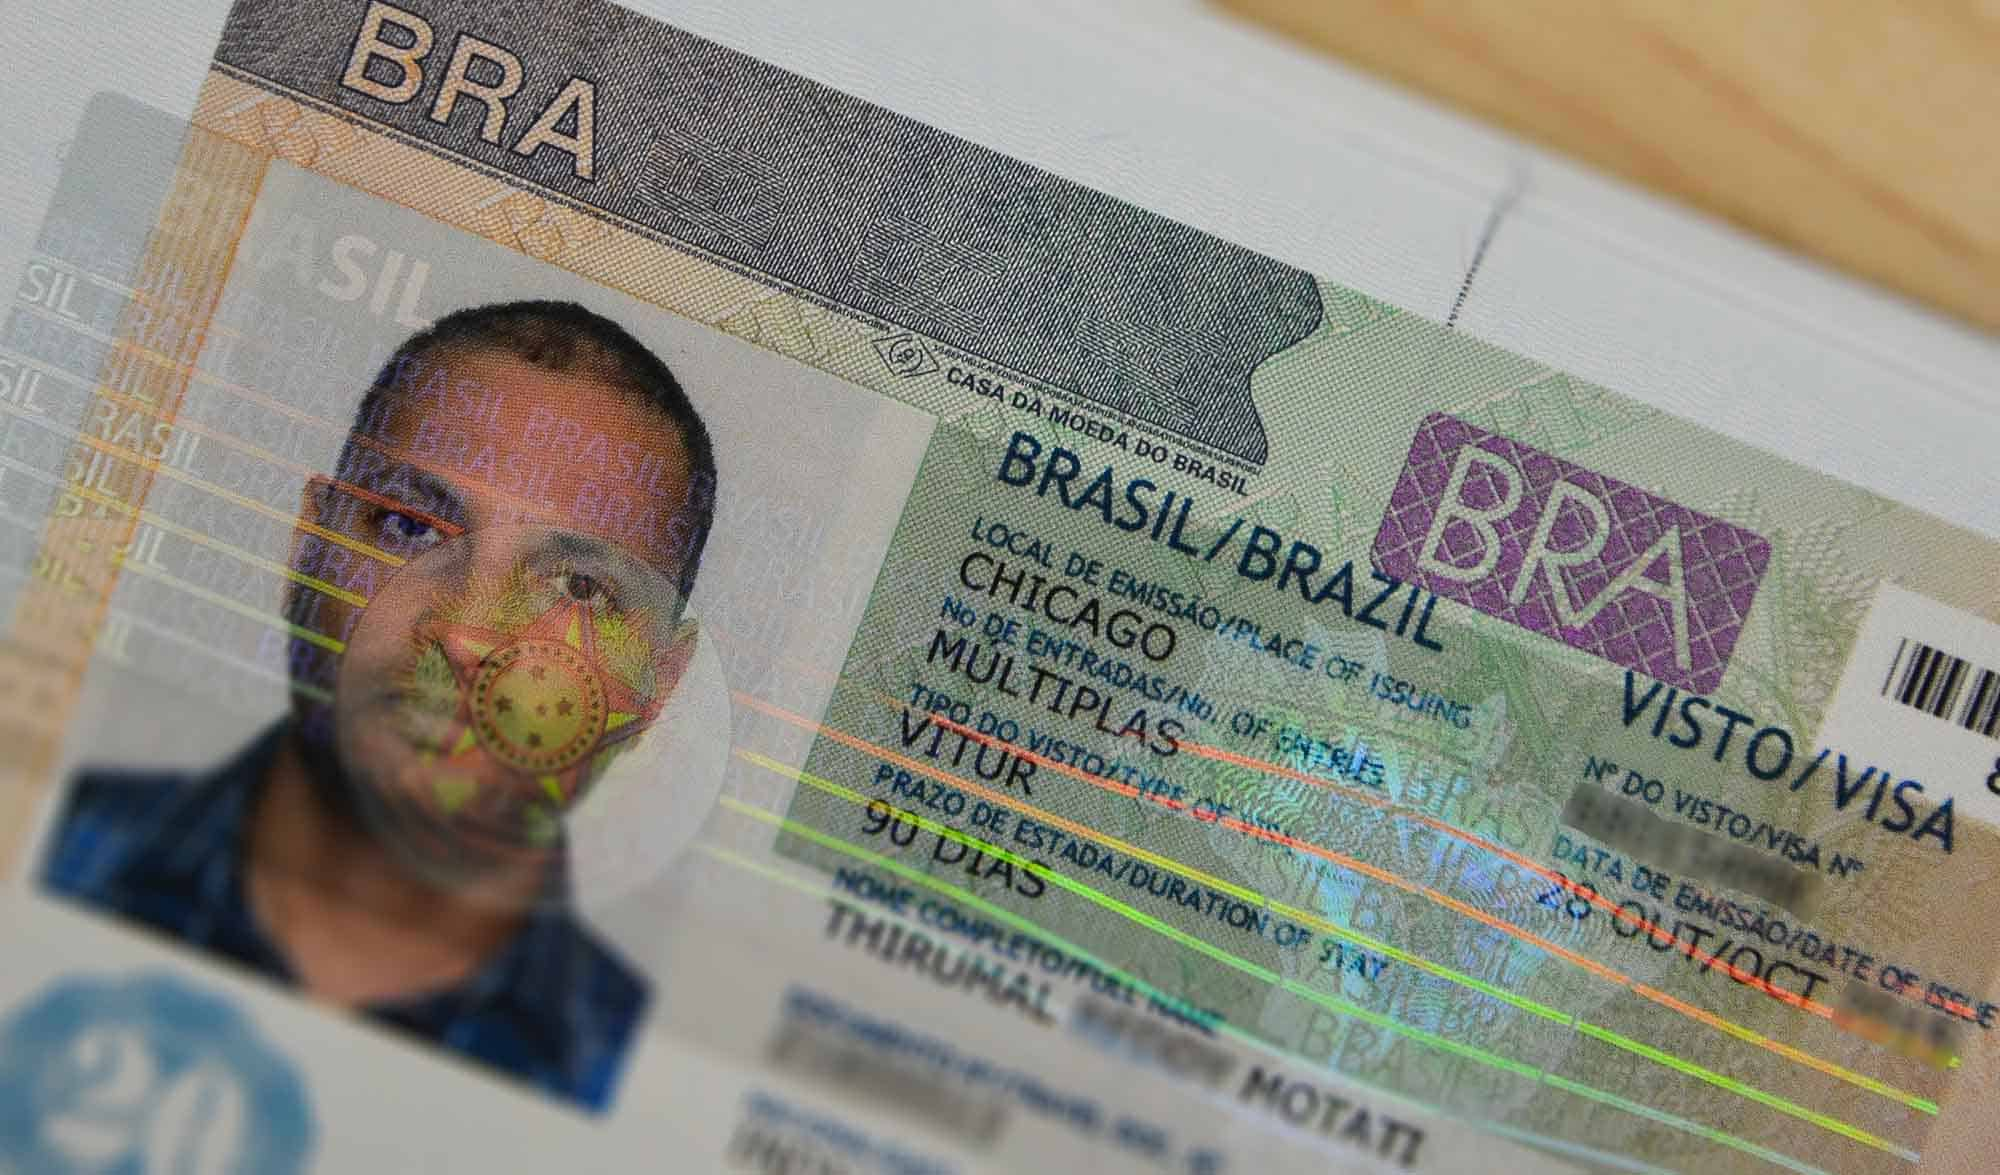 brazil consulate sydney visa application